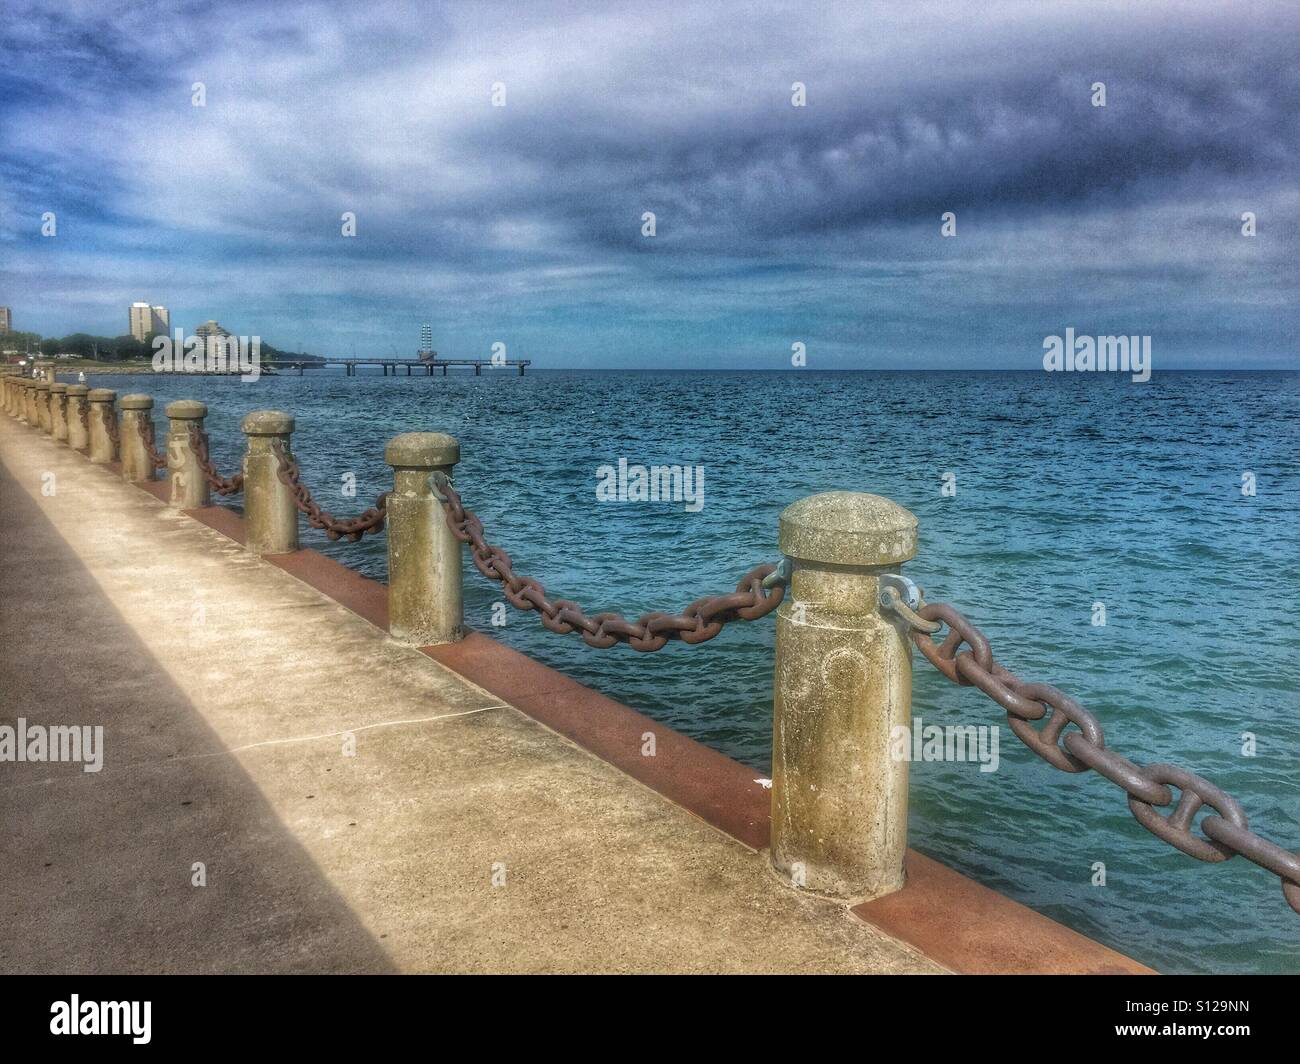 Downtown Burlington Ontario waterfront and storm clouds over Lake Ontario on a hot summer day. - Stock Image